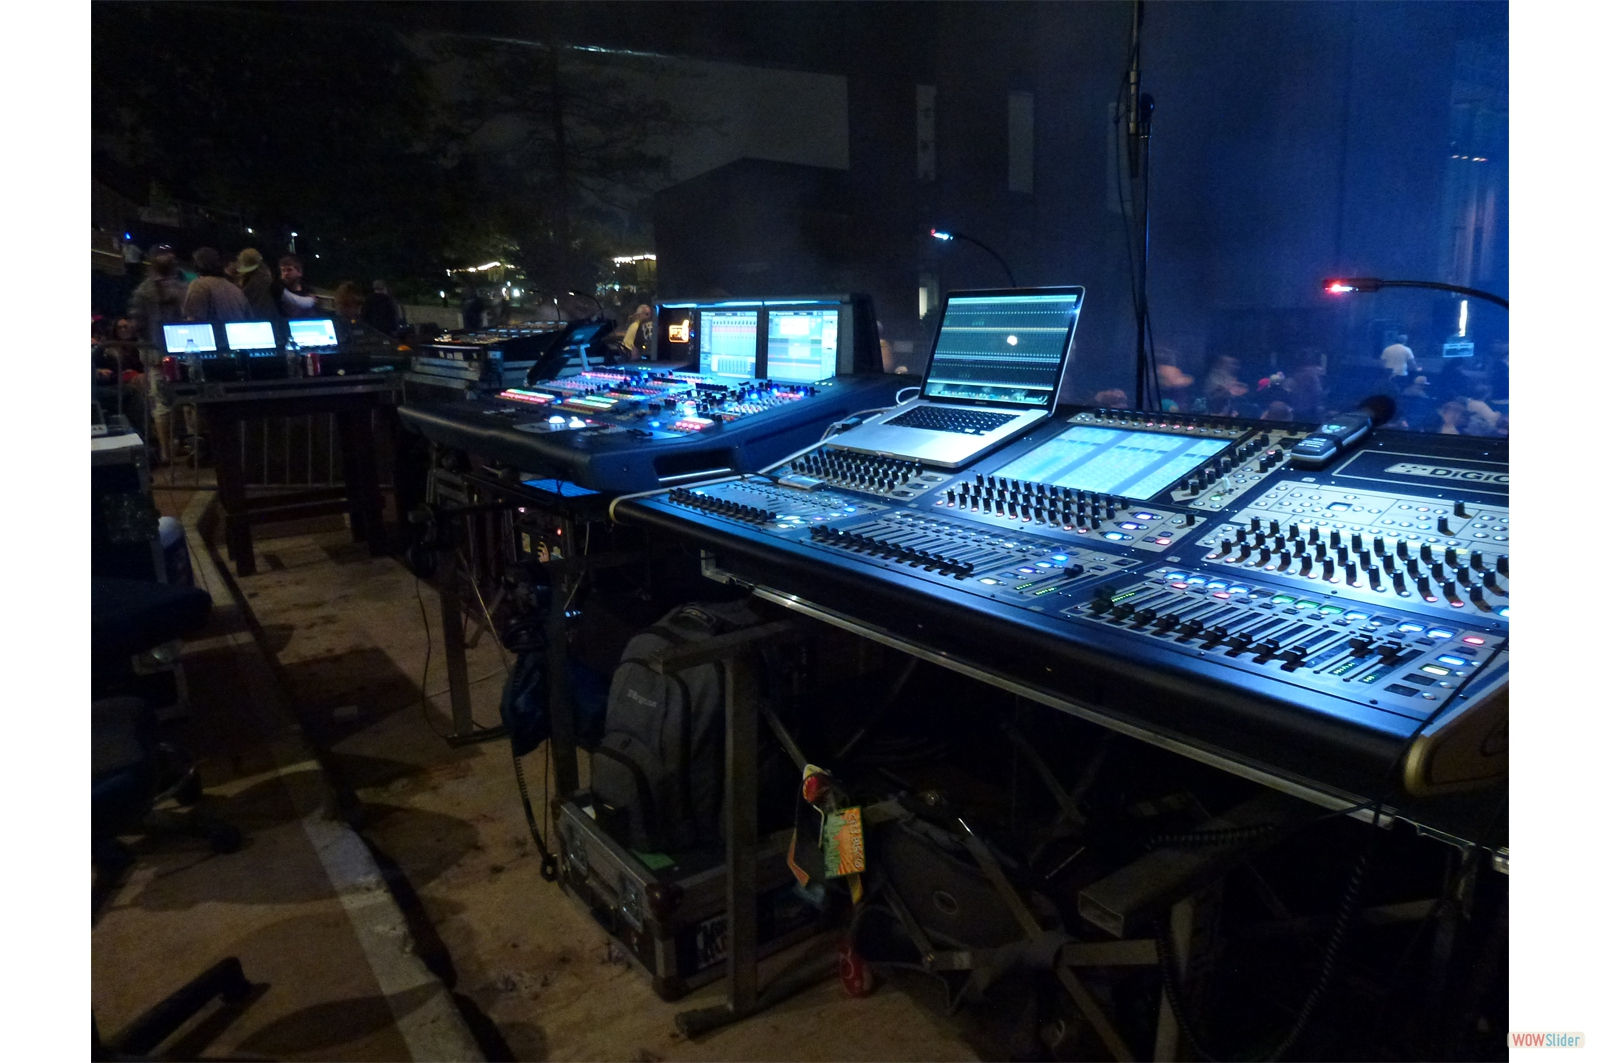 Mission Control at City Bisco - Mann Center; Philadelphia, PA.